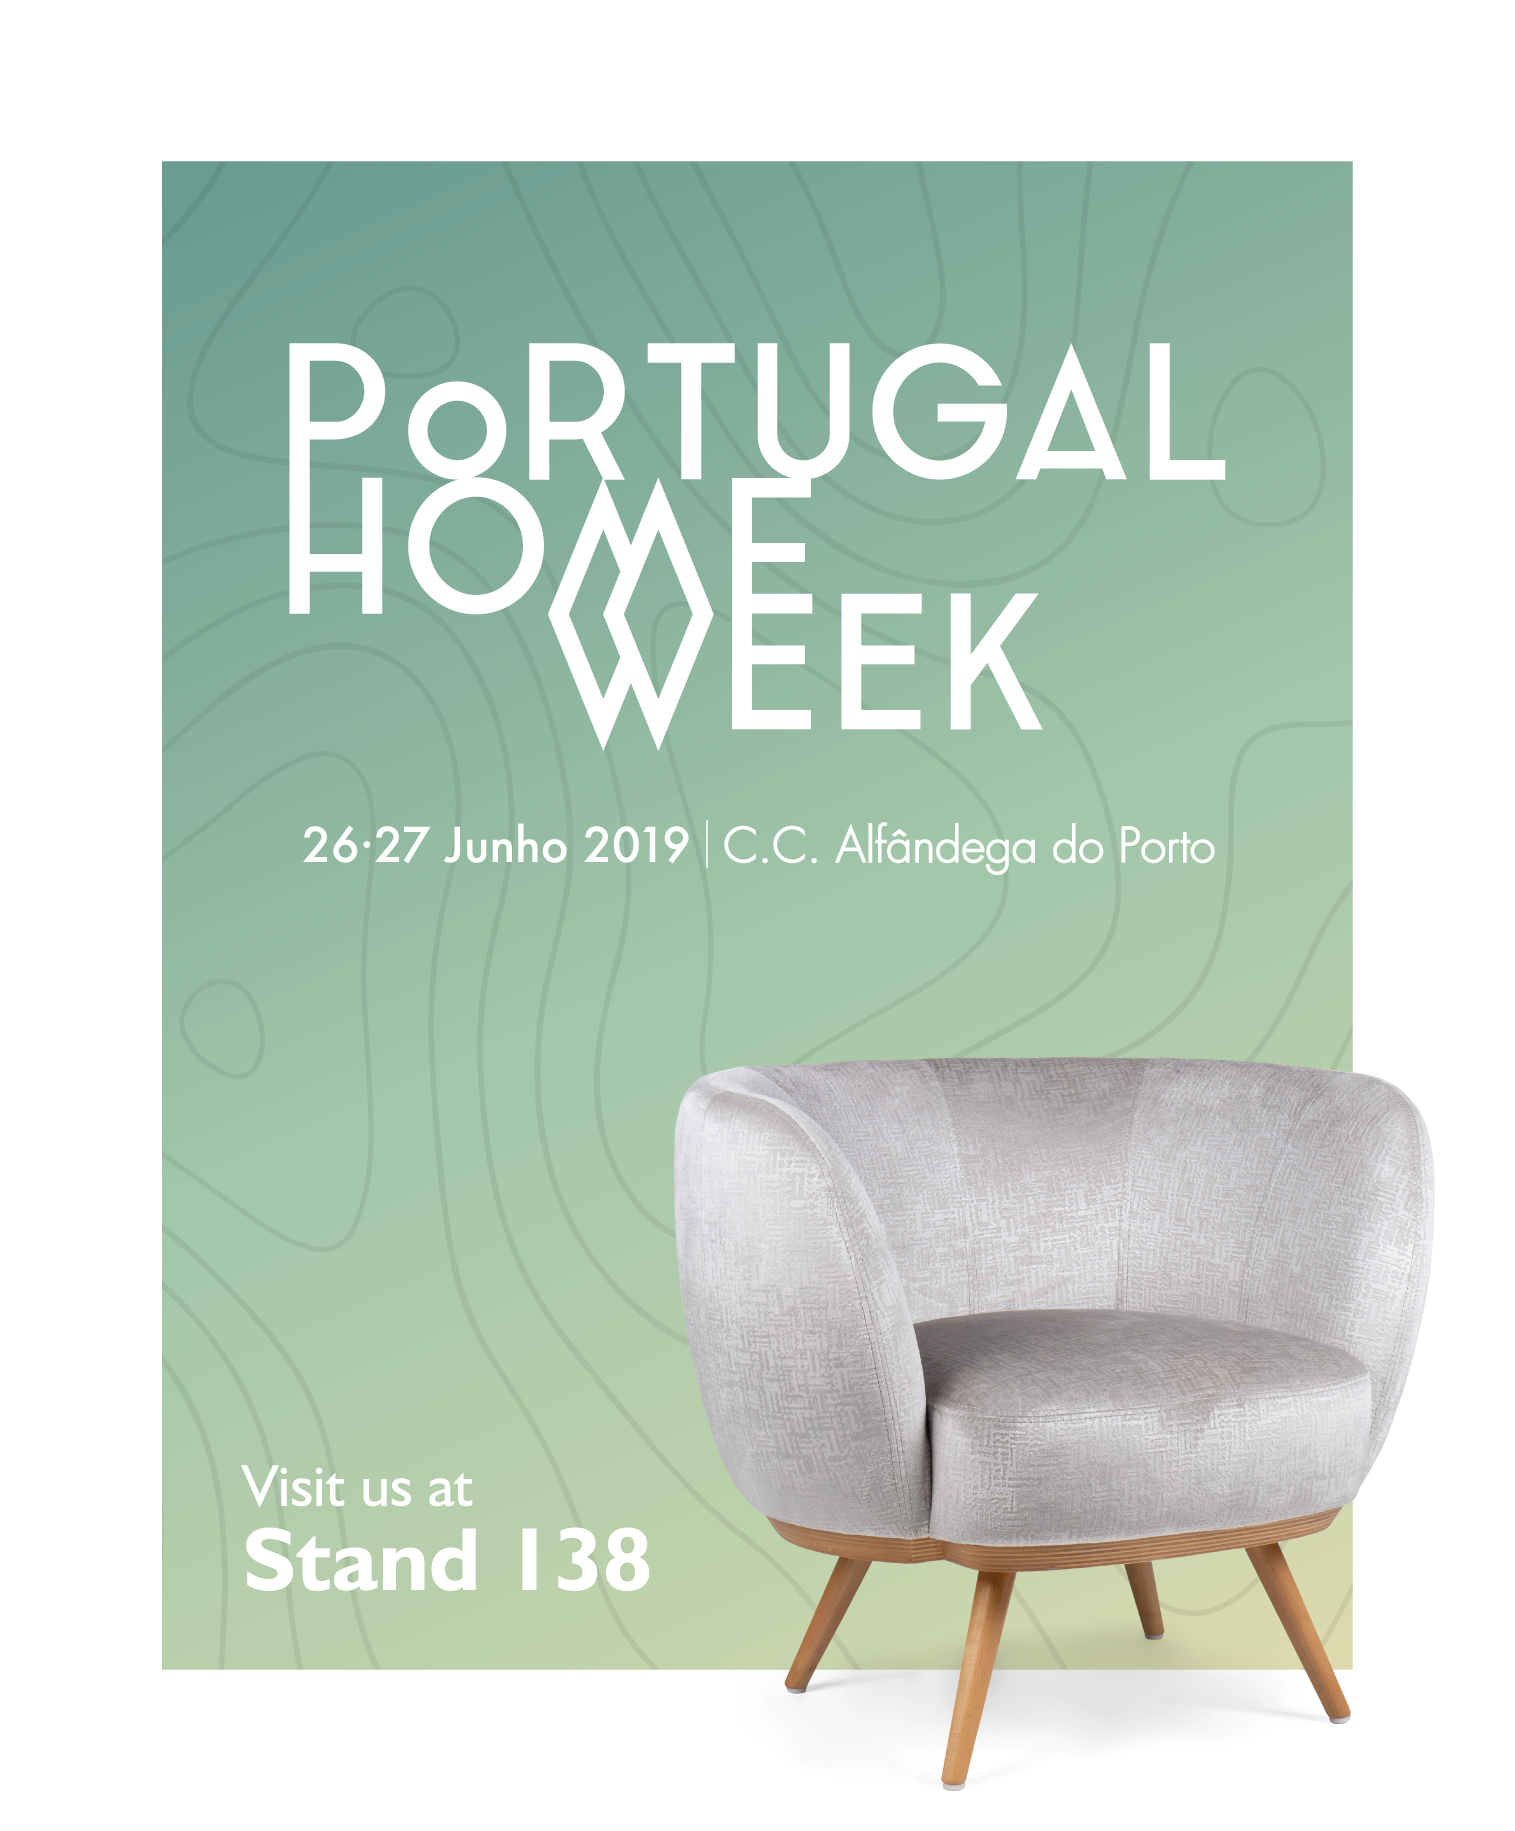 cosmo chair relationed with portugal home week